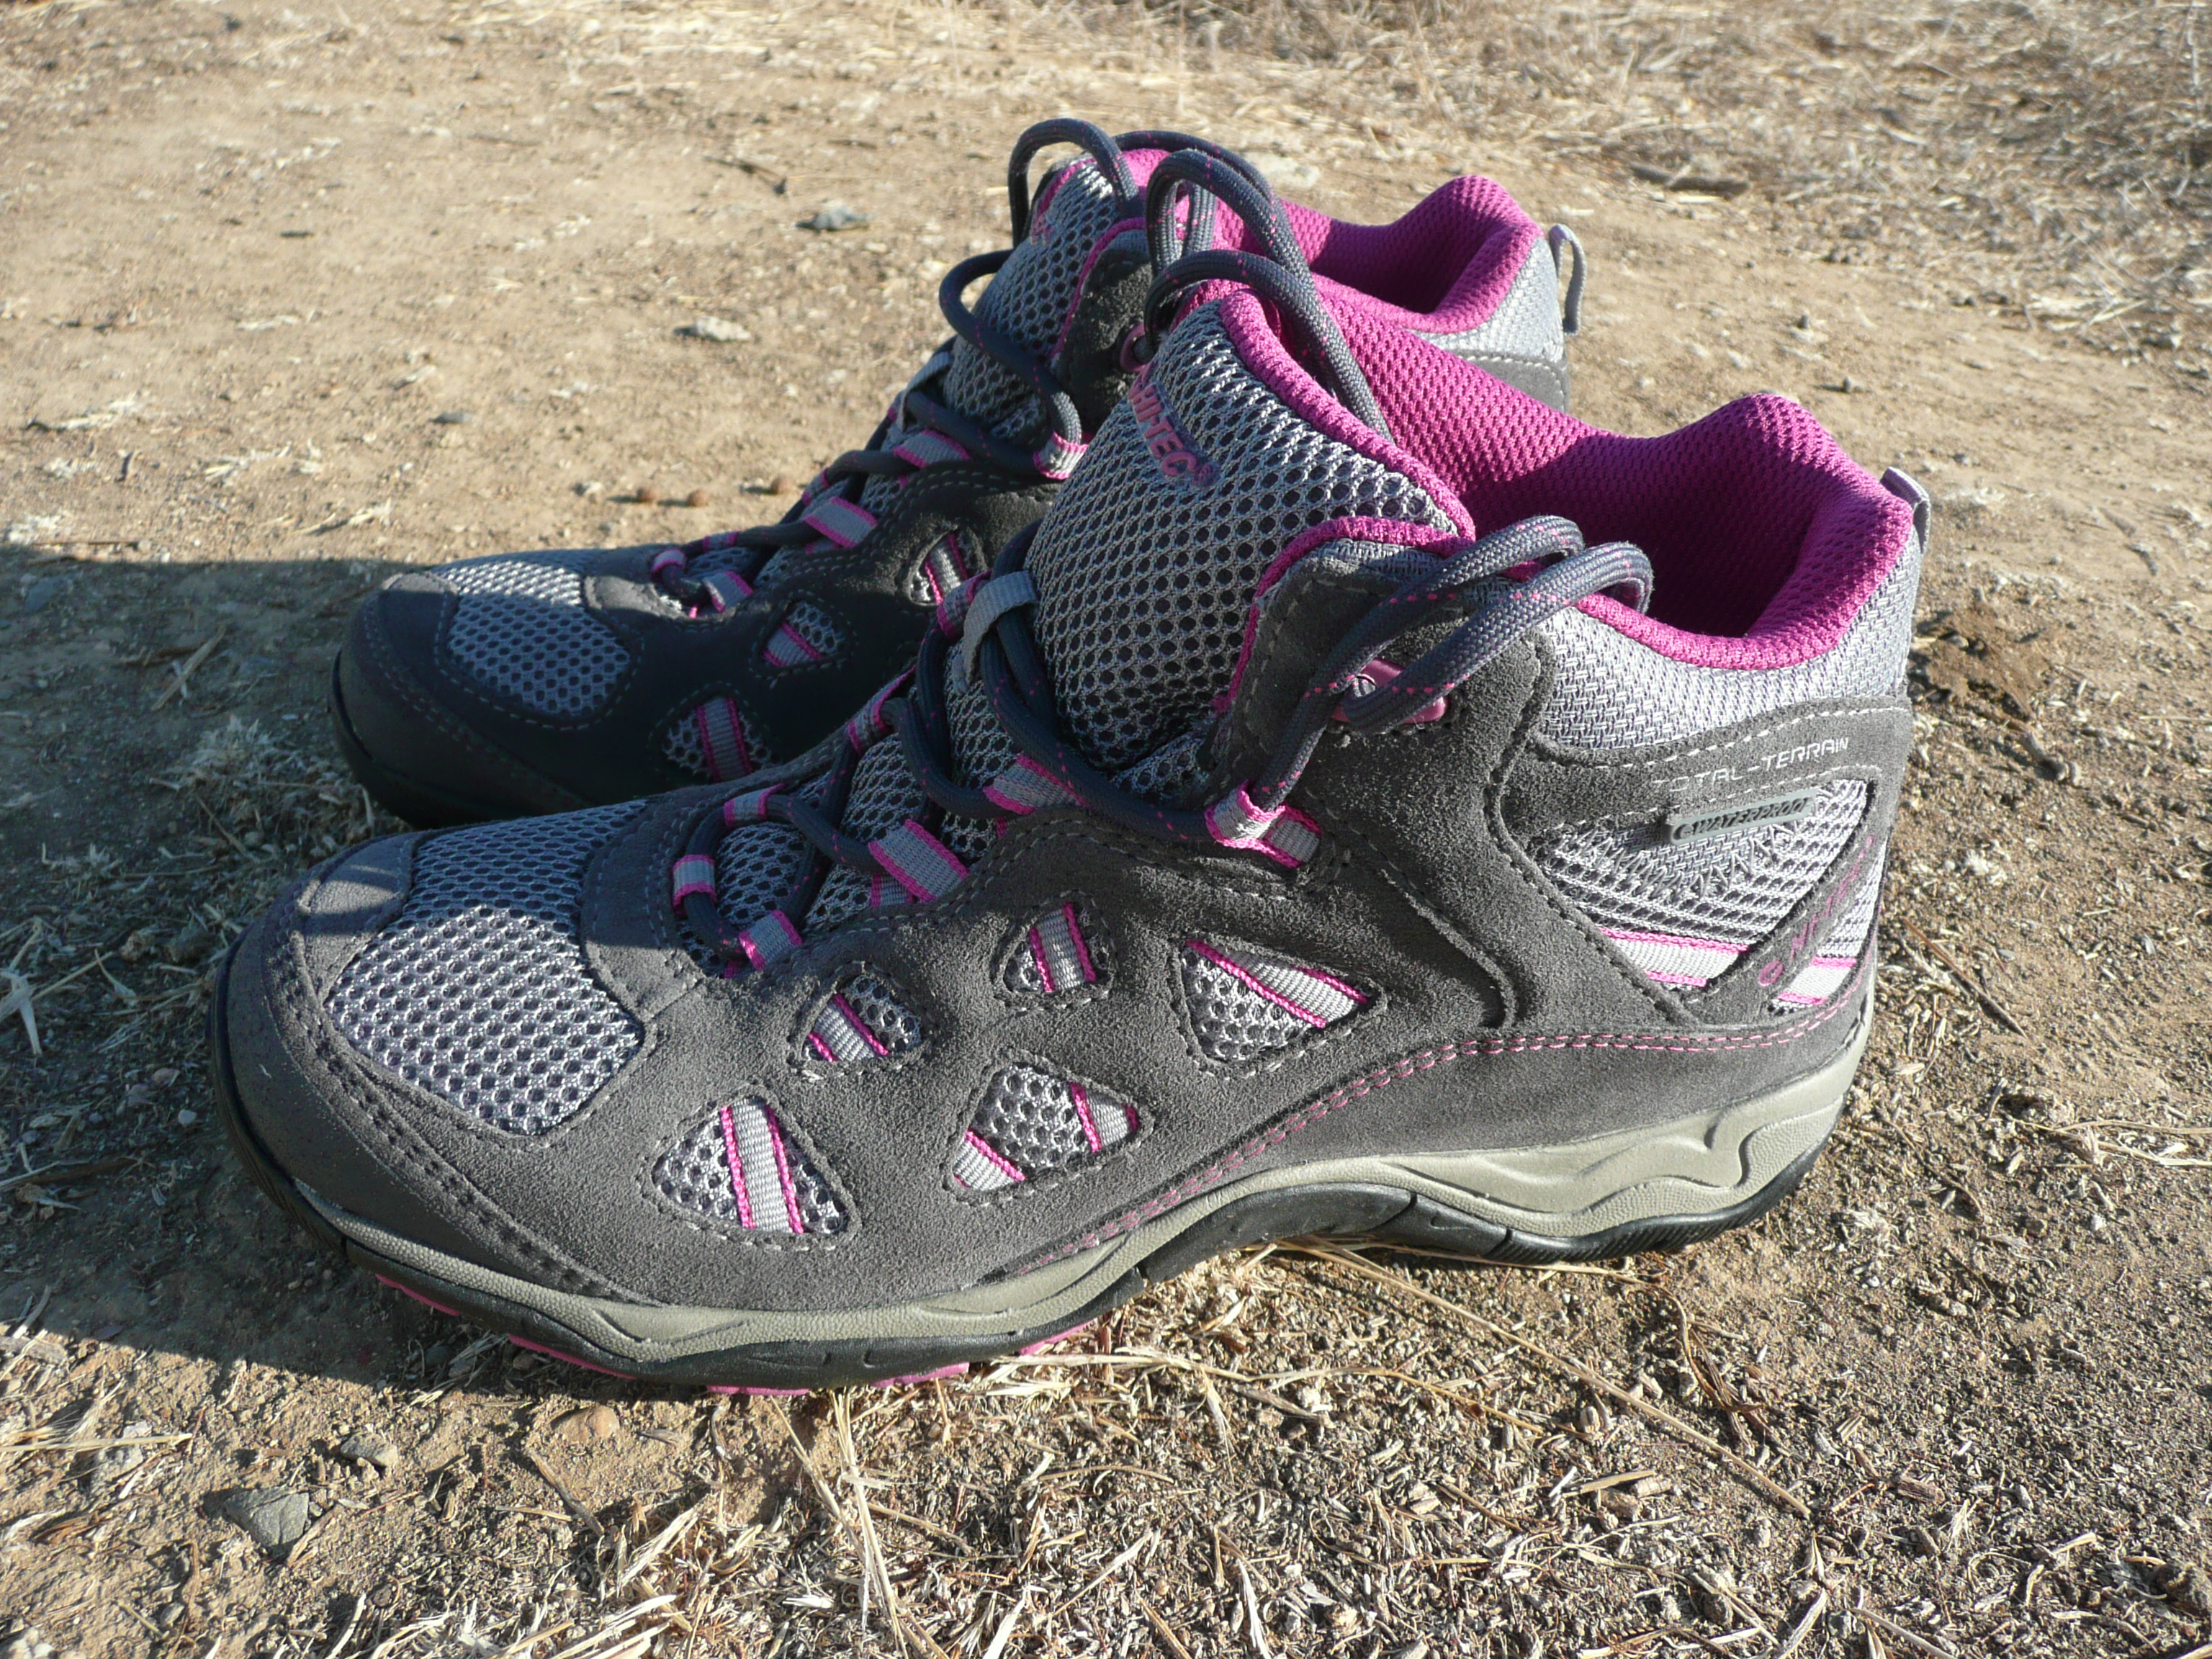 During the past month I wore the Hi-Tec Total Terrain Aero Mid Boots ...